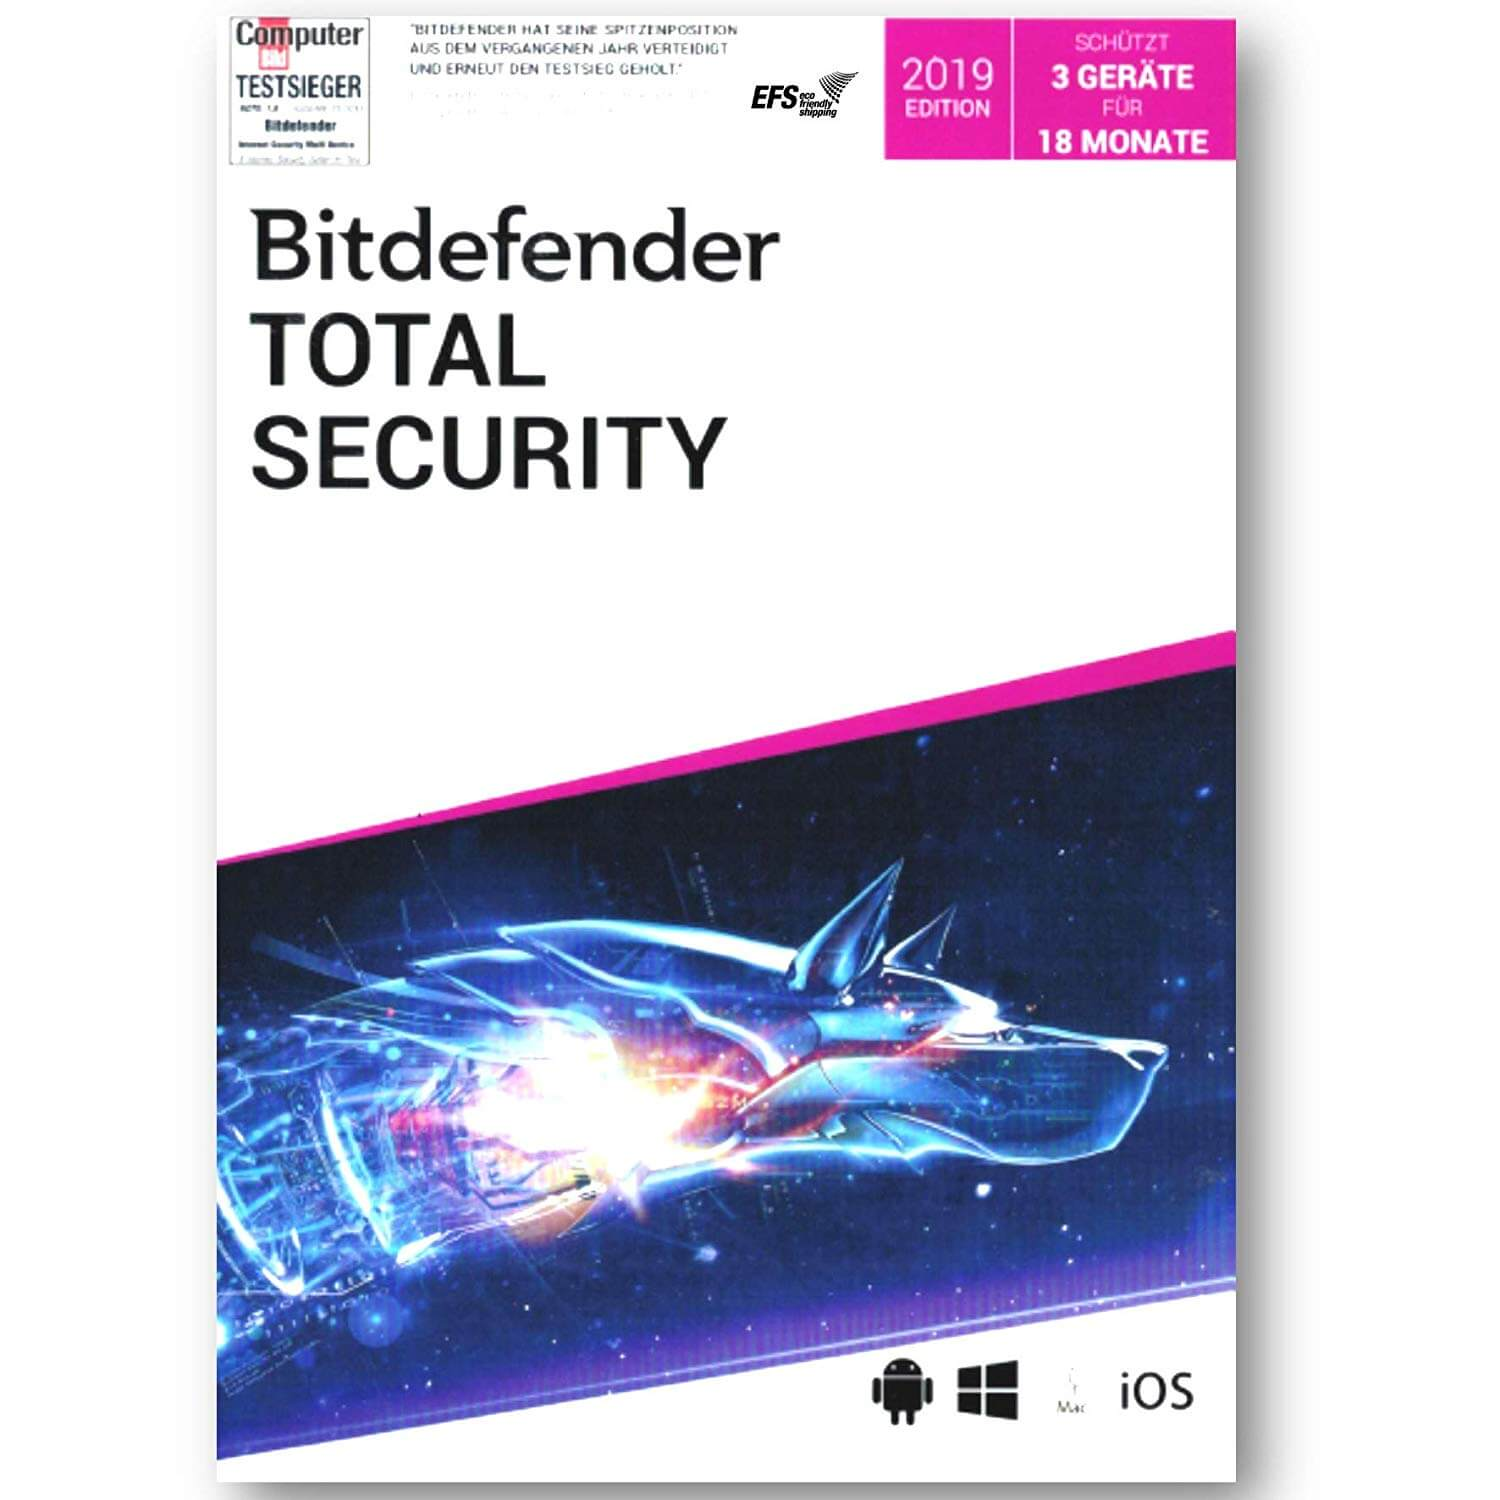 Bitdefender download